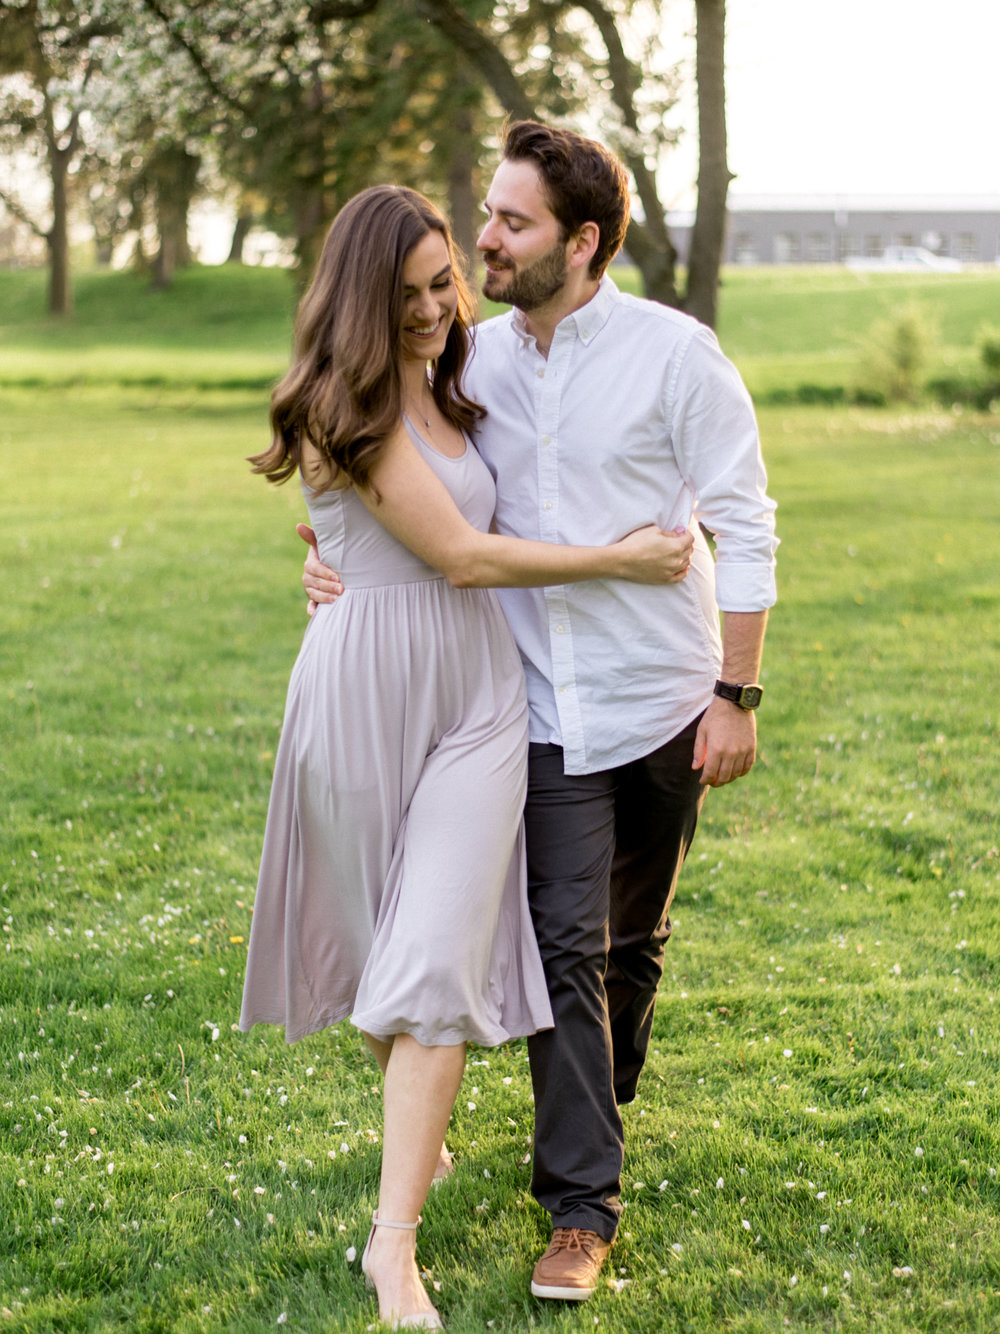 Chris & Heather's Engagement Session in Vineland Ontario Spring Blossoms Trees by Hush Hush Photography & Film Aidan Hennebry - 23.jpg